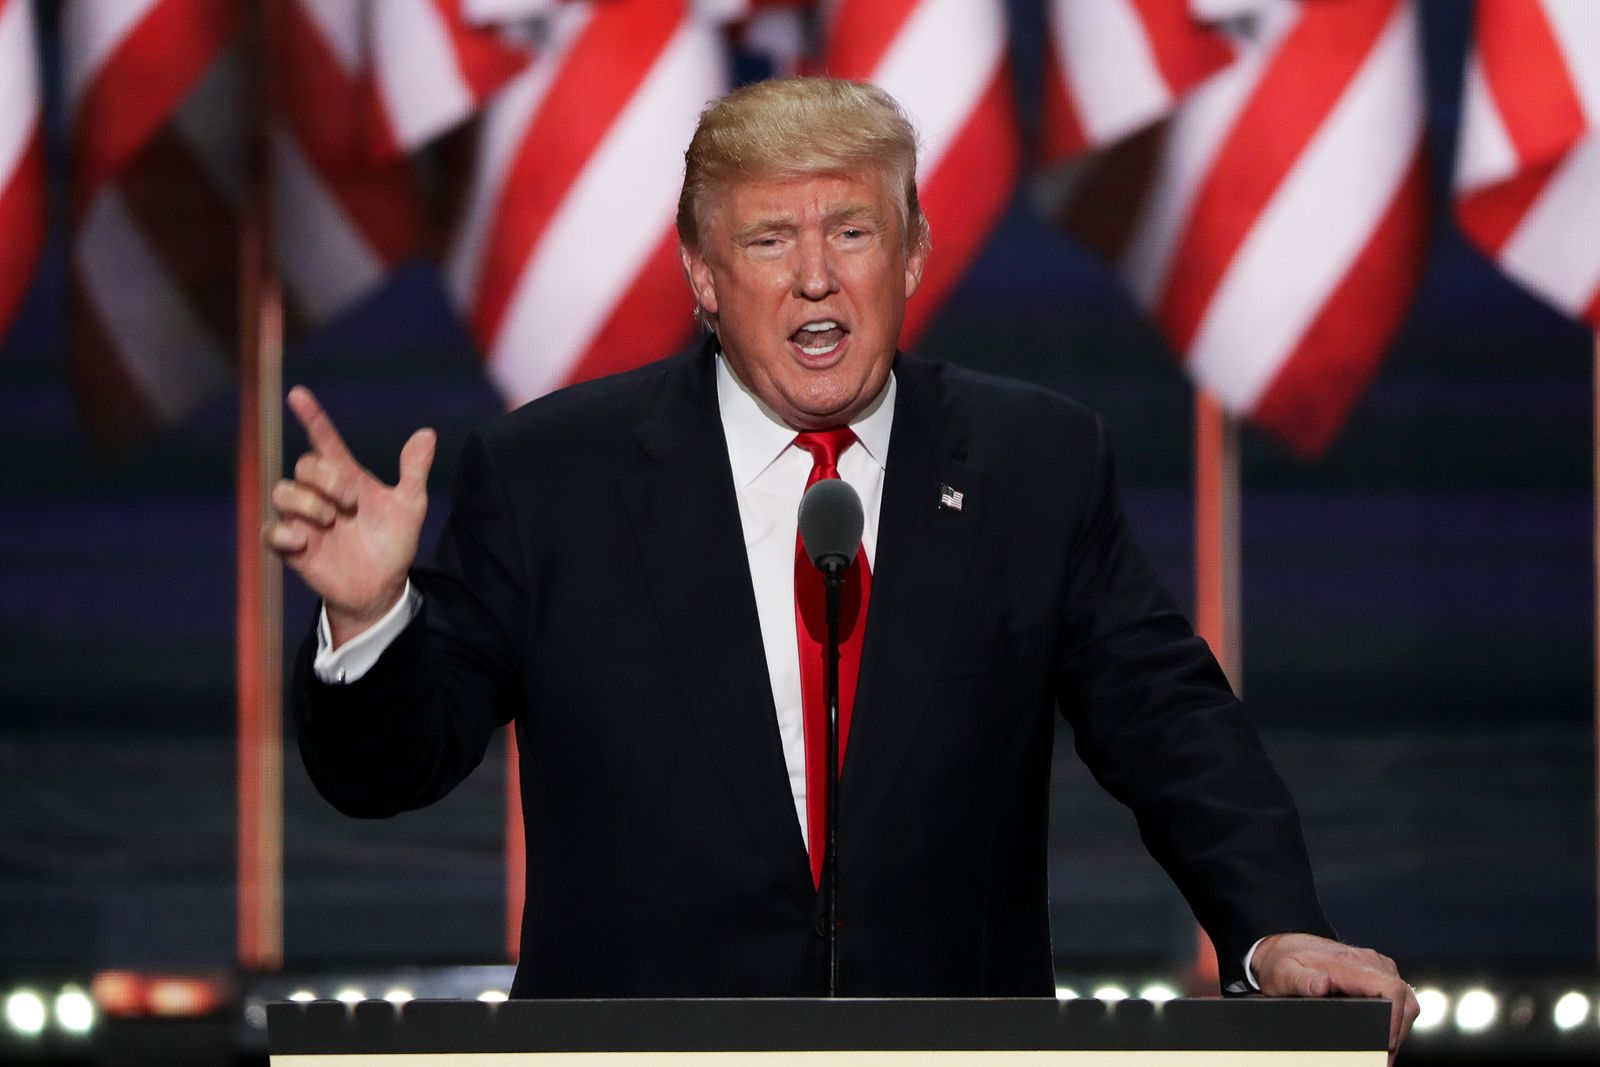 Donald Trump gesturing with his right hand, pointing up and to the right with a bent elbow, during a speech to the Republican National Convention in Cleveland in 2016.